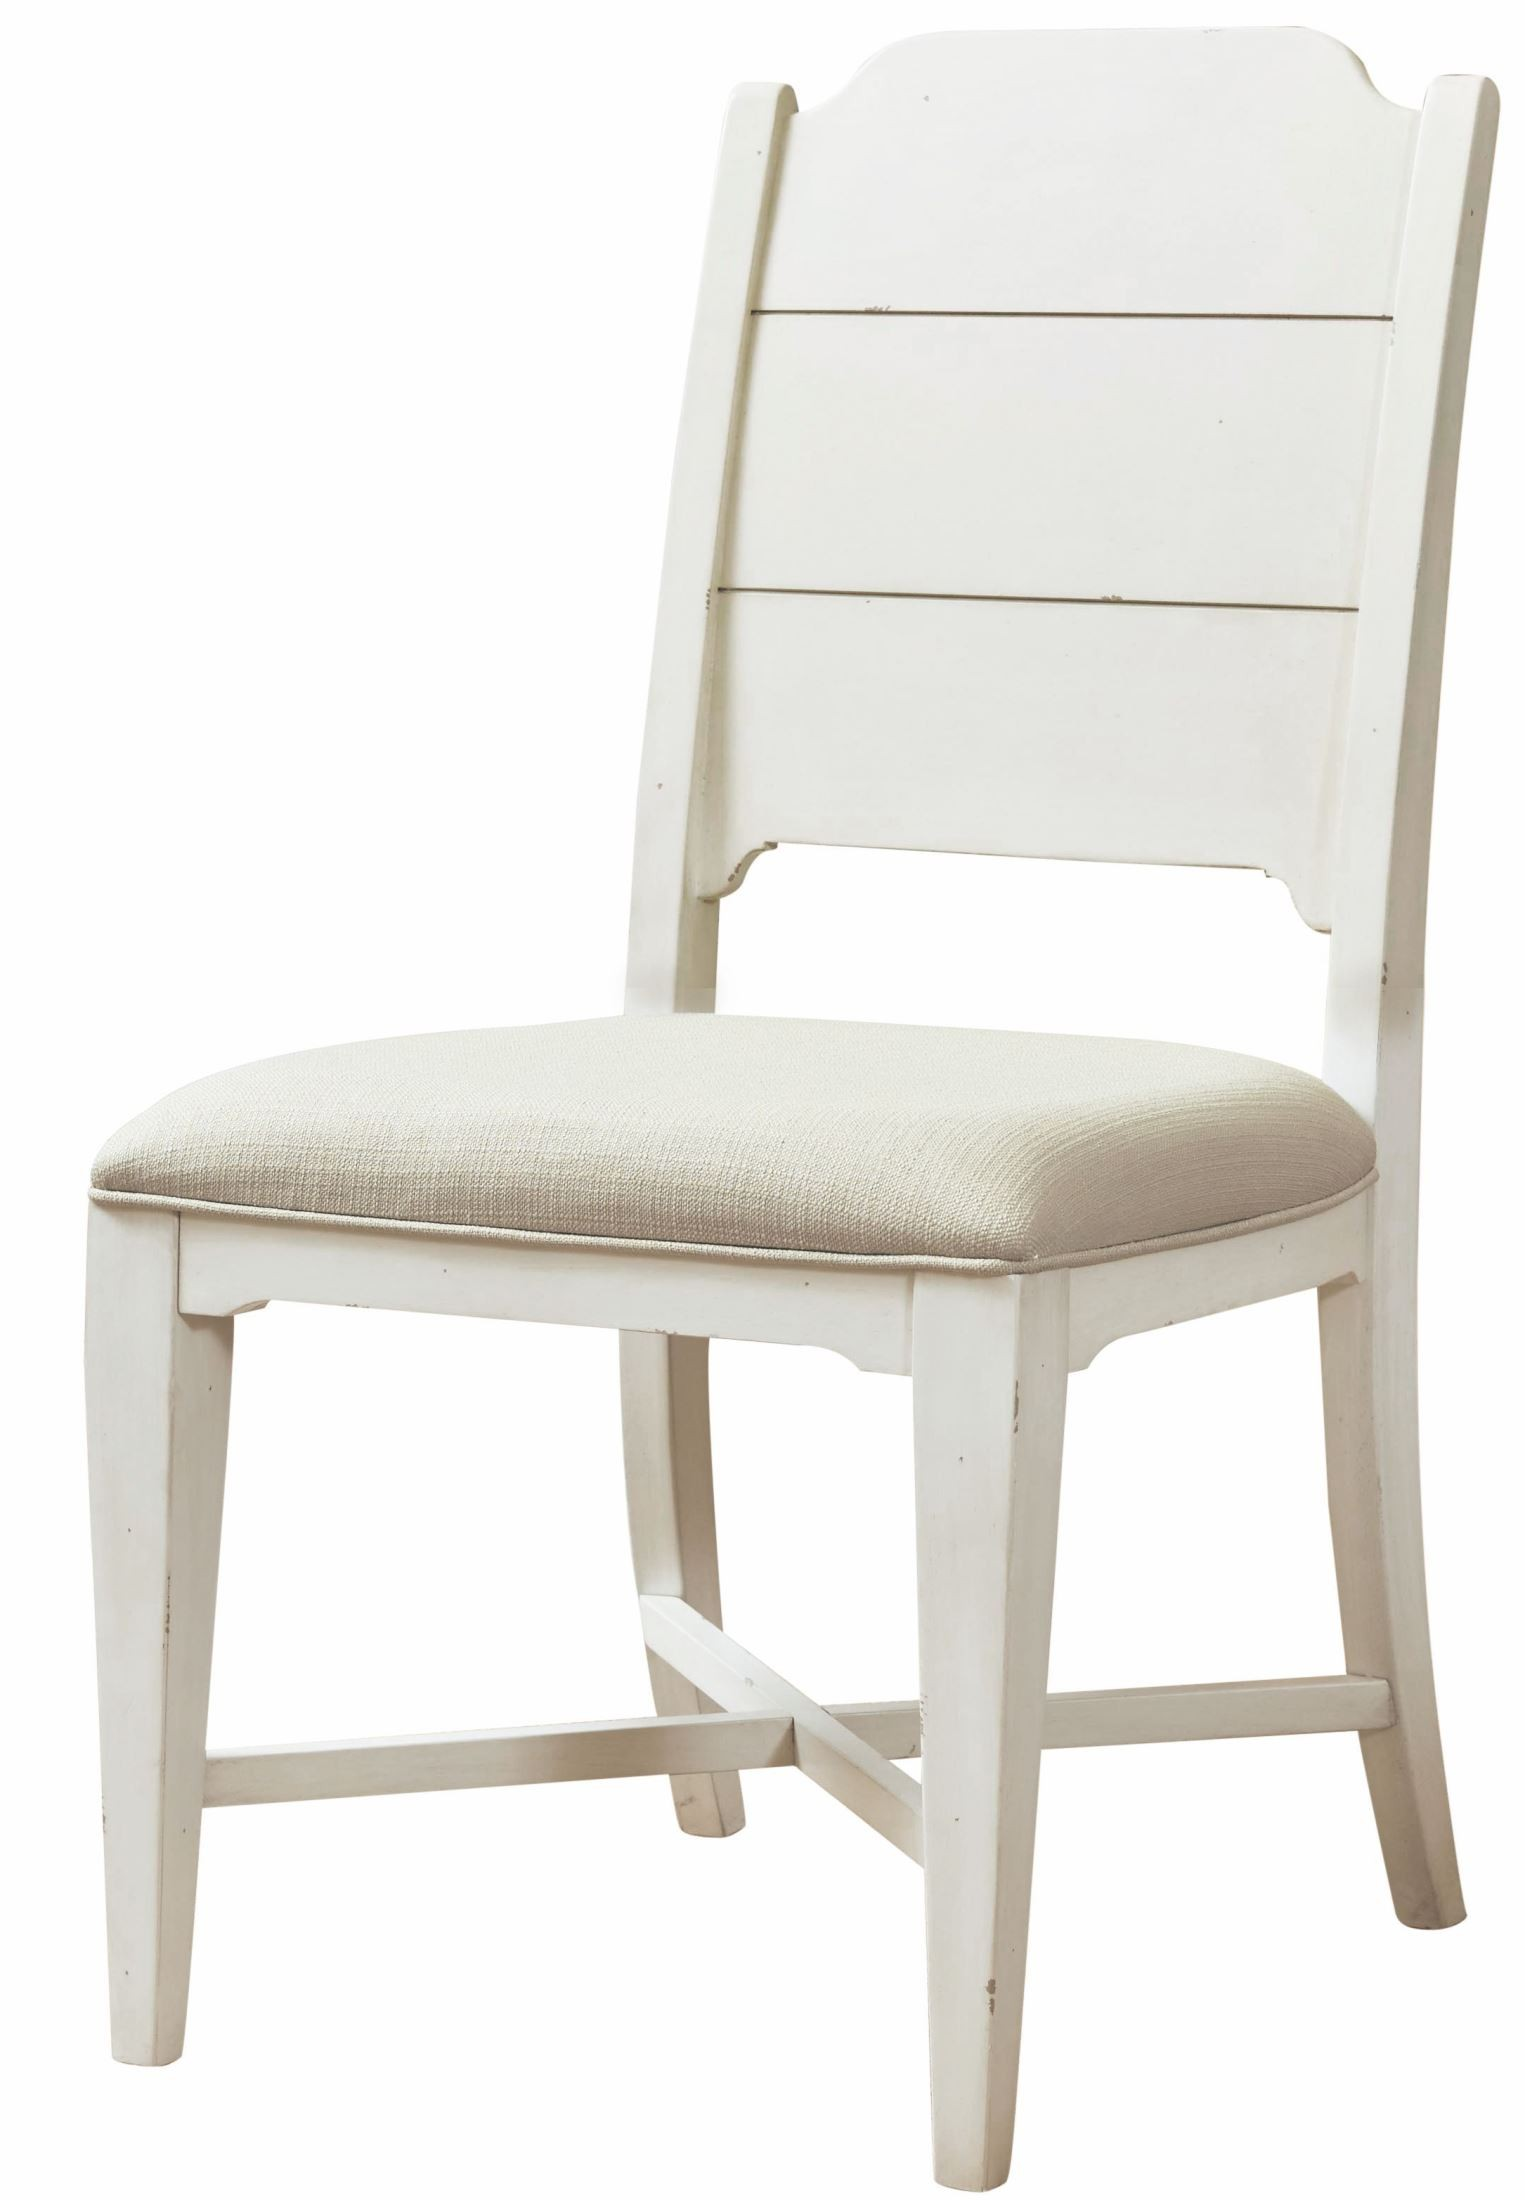 Antique White Dining Room Furniture: Coventry Lane Antique White Dining Side Chair Set Of 2